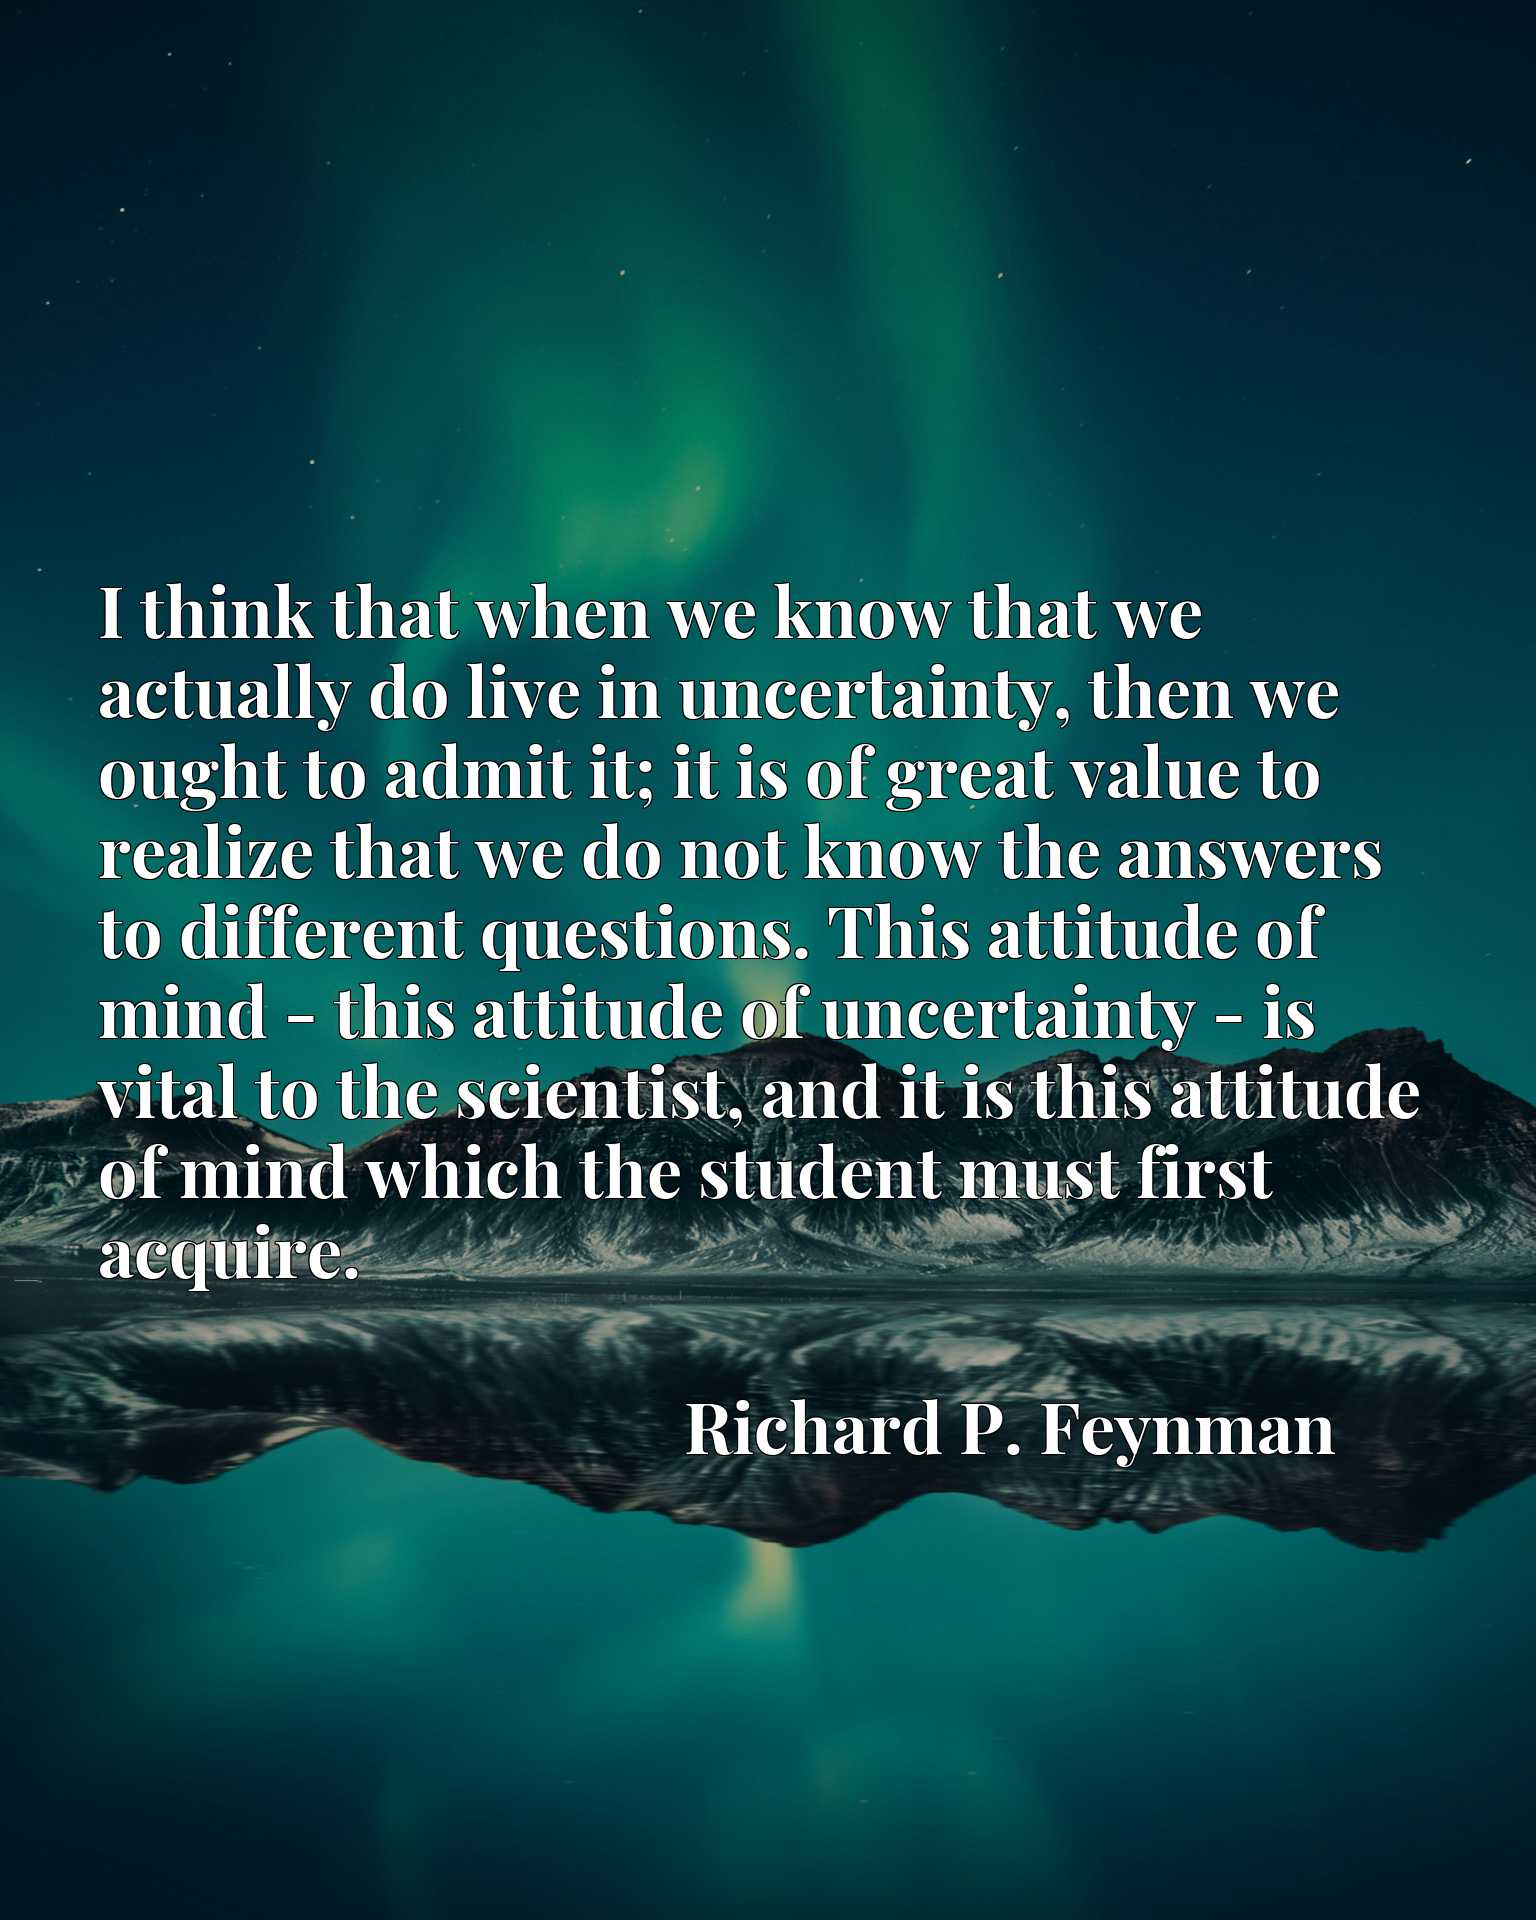 I think that when we know that we actually do live in uncertainty, then we ought to admit it; it is of great value to realize that we do not know the answers to different questions. This attitude of mind - this attitude of uncertainty - is vital to the scientist, and it is this attitude of mind which the student must first acquire.